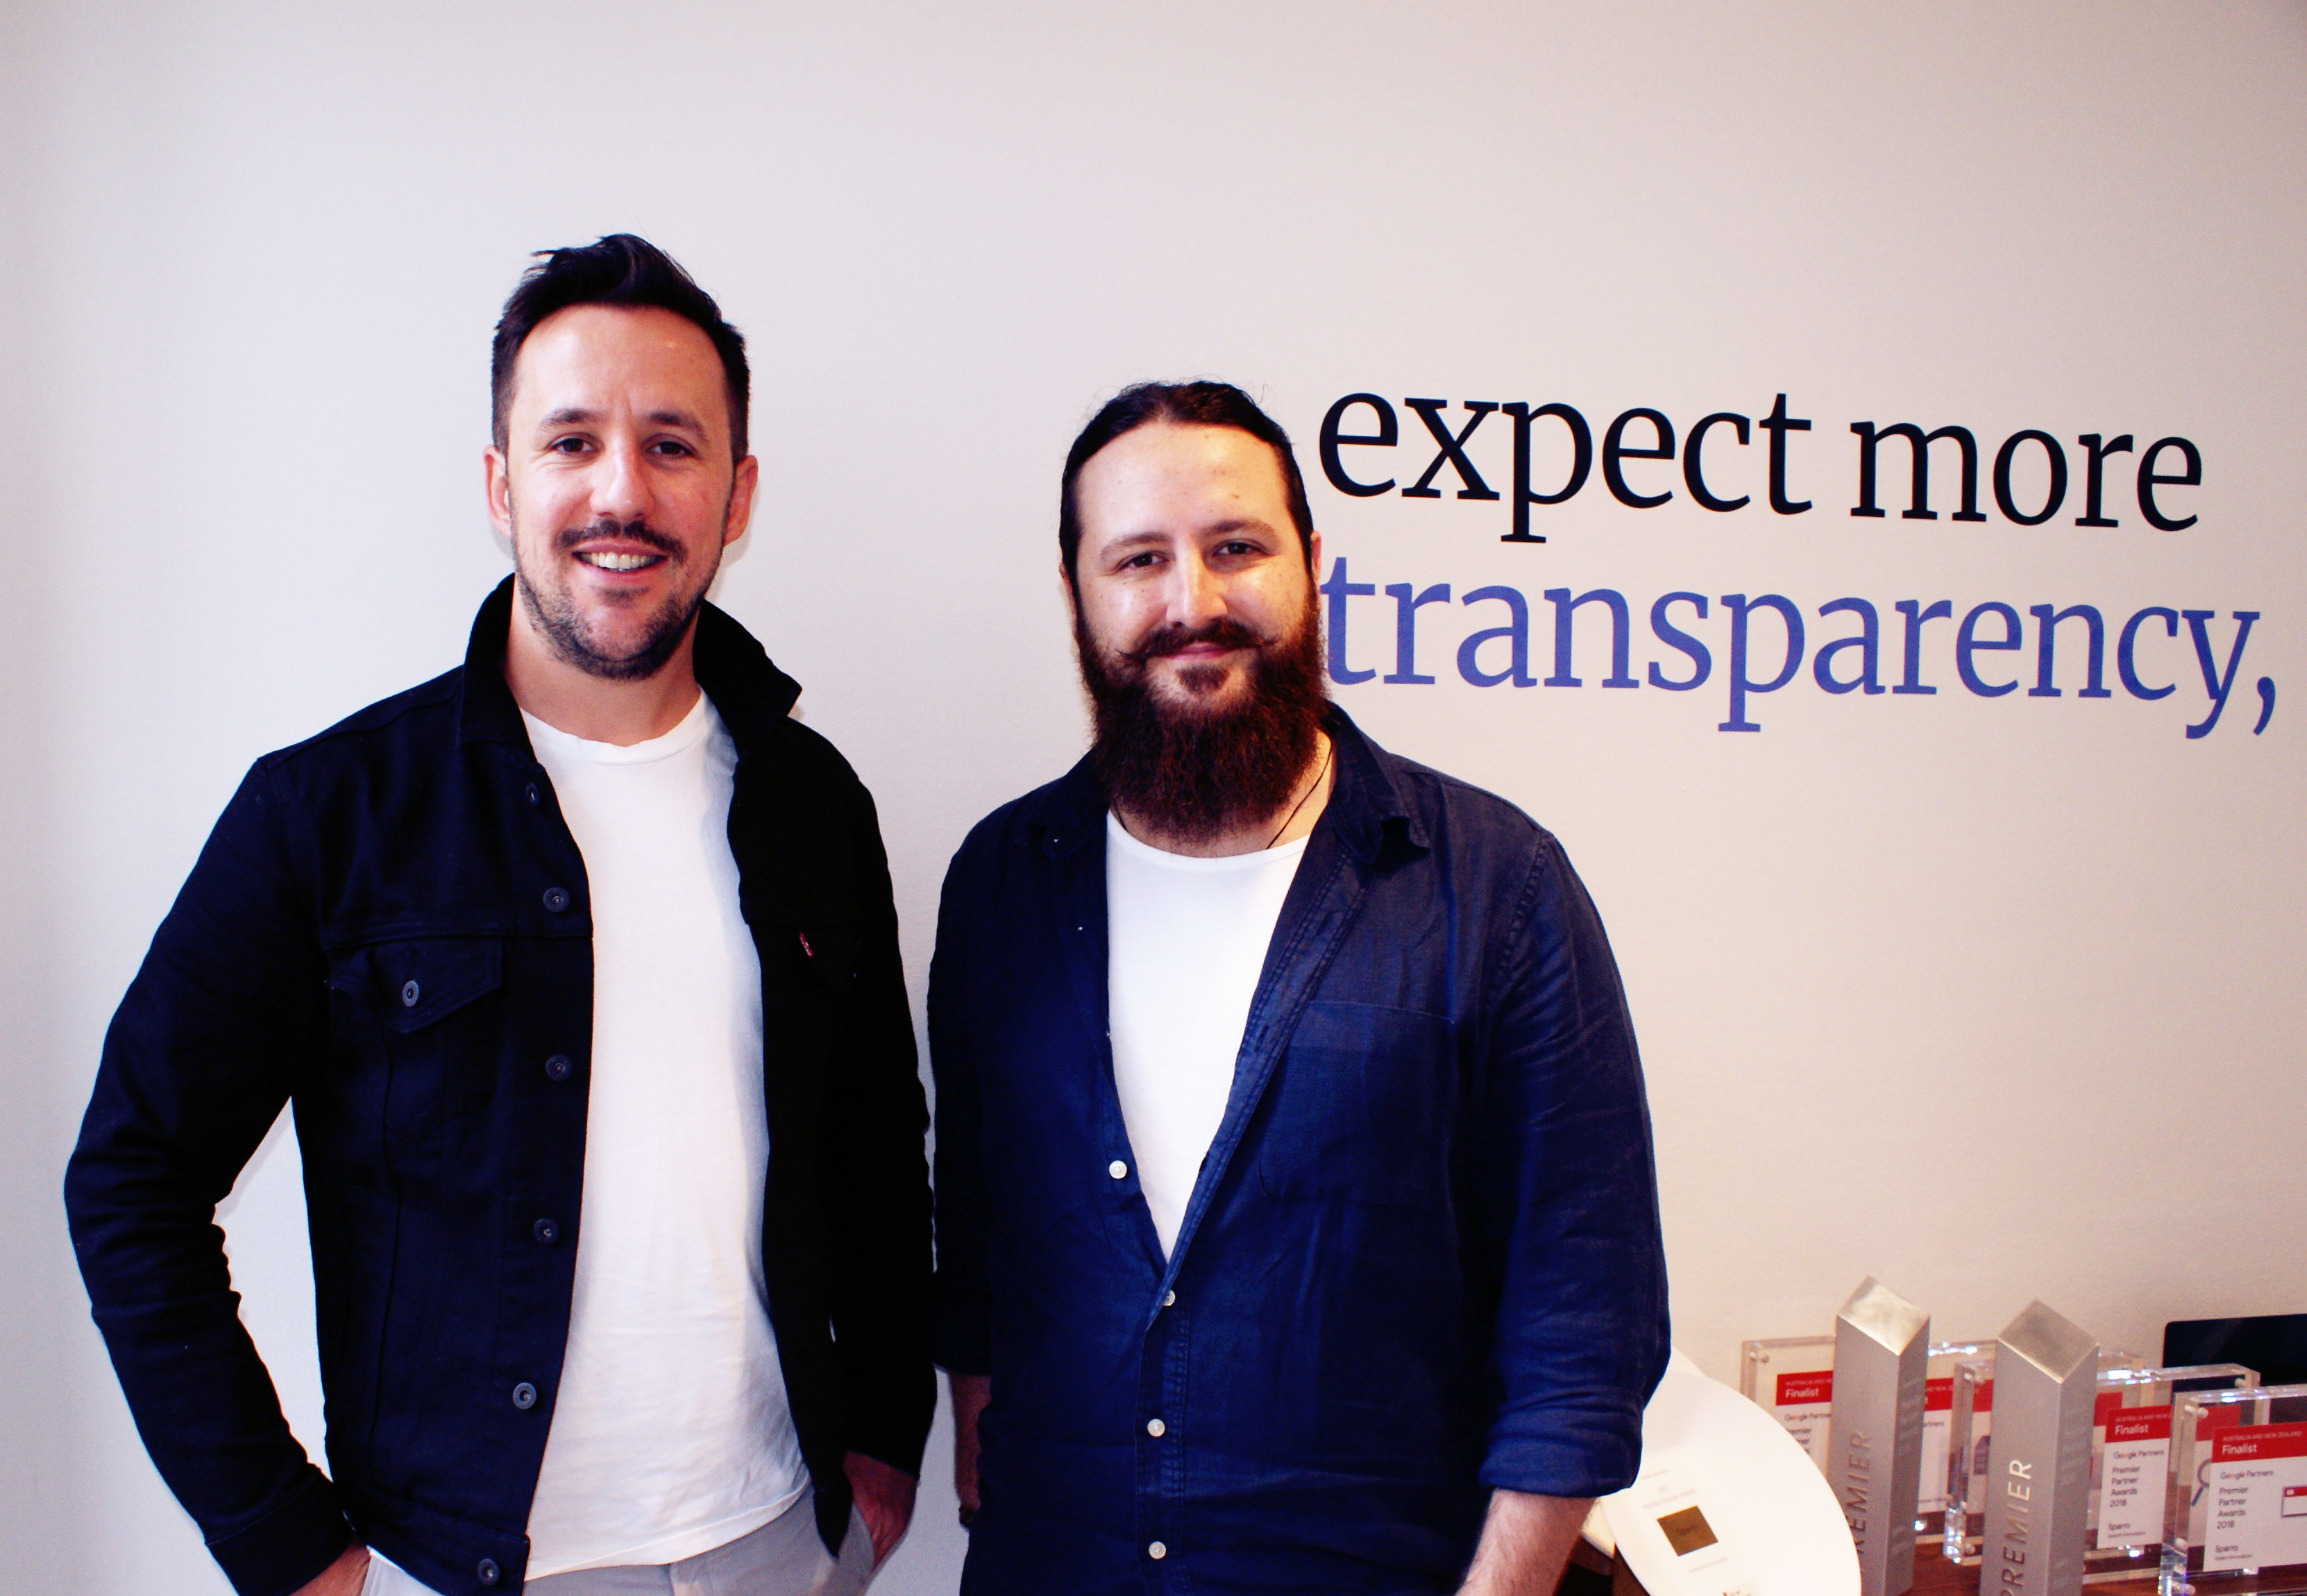 Independent digital marketing agency Sparro appoints Michael Troumbas as strategy director